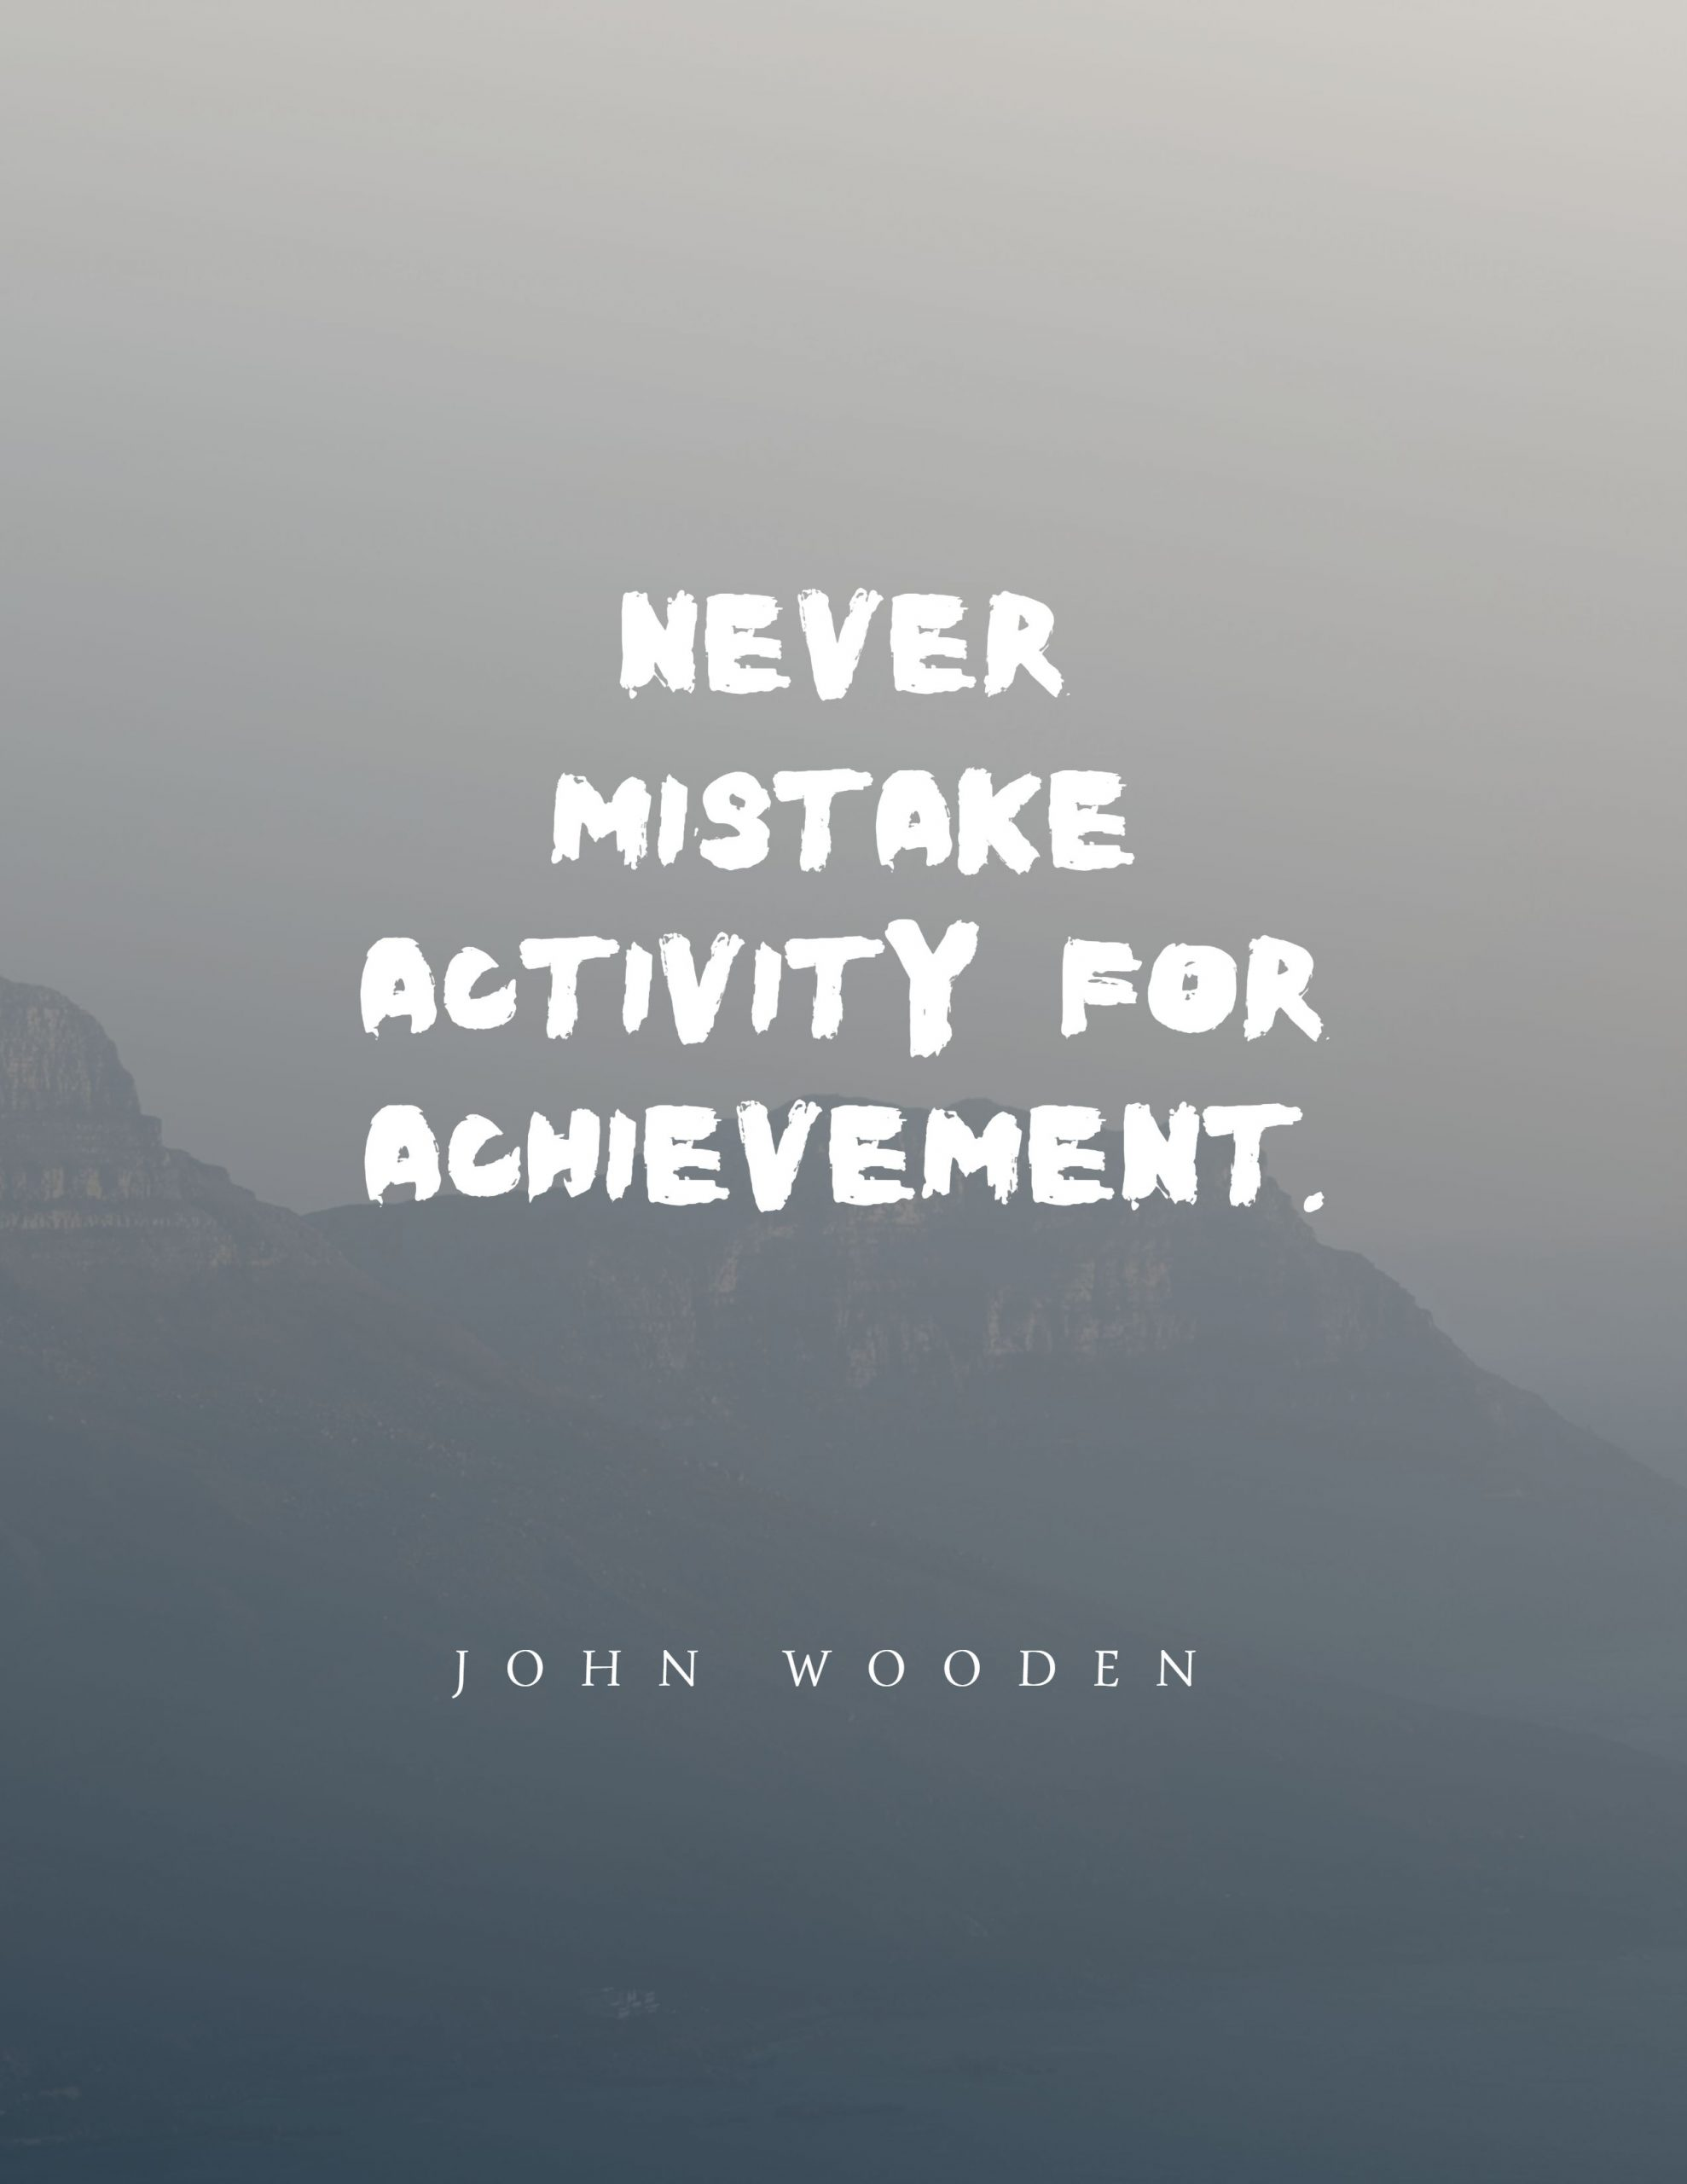 Quotes image of Never mistake activity for achievement.